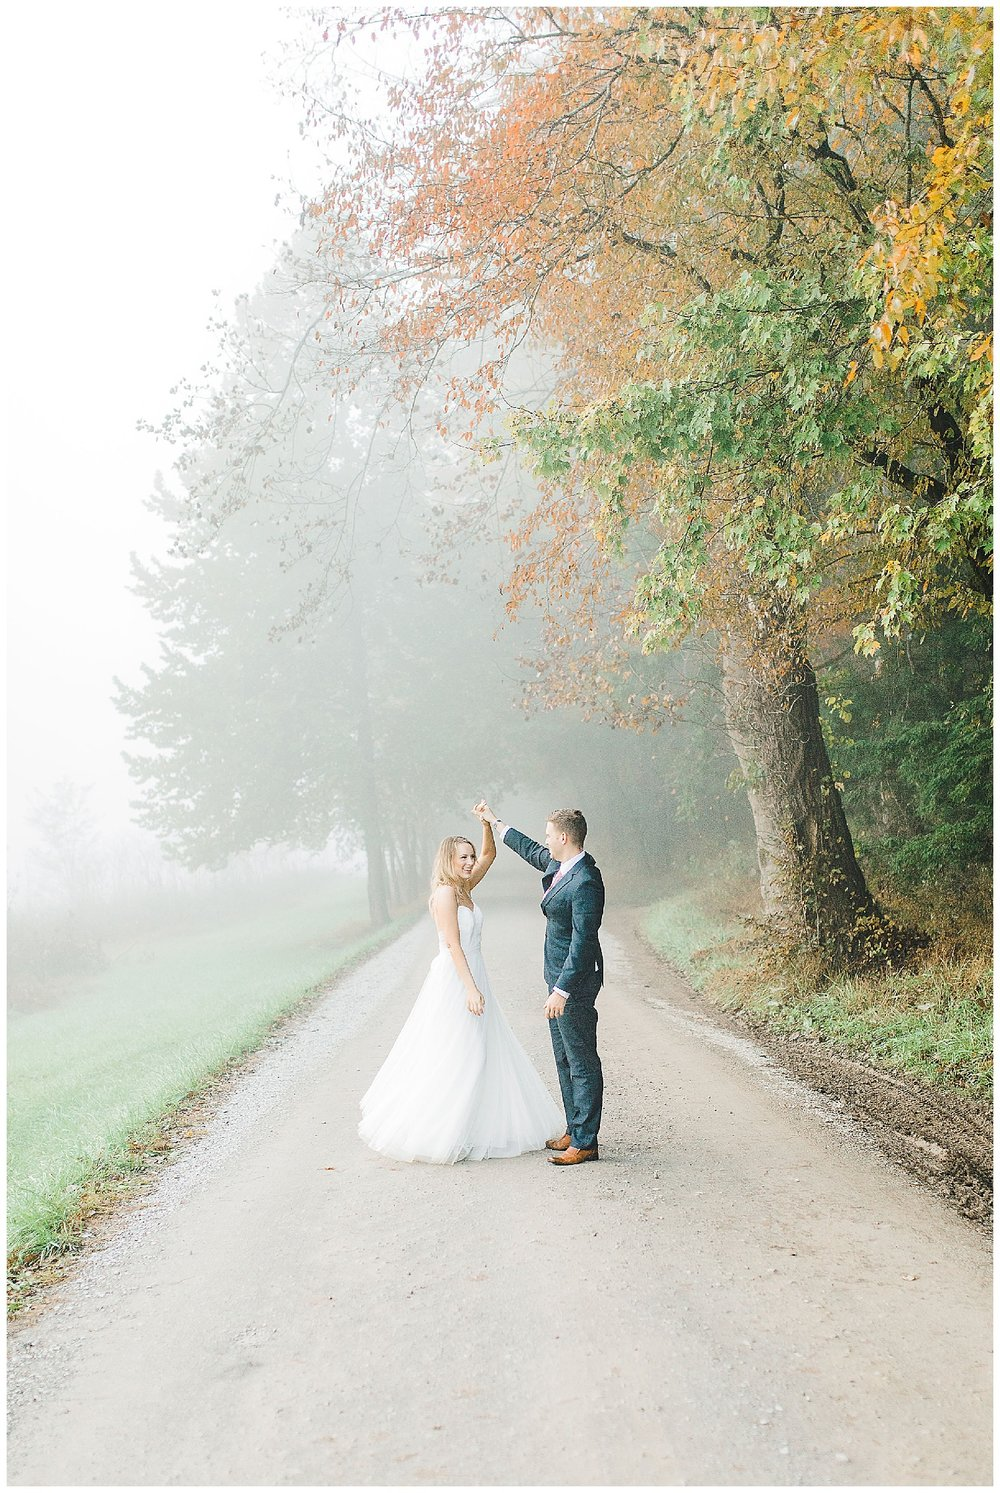 Emma Rose Company recently got to travel all the way to Nashville to photograph the most beautiful post-wedding bride and groom portraits in the Great Smoky Mountains with a gorgeous couple! Nashville wedding inspiration at it's finest._0019.jpg